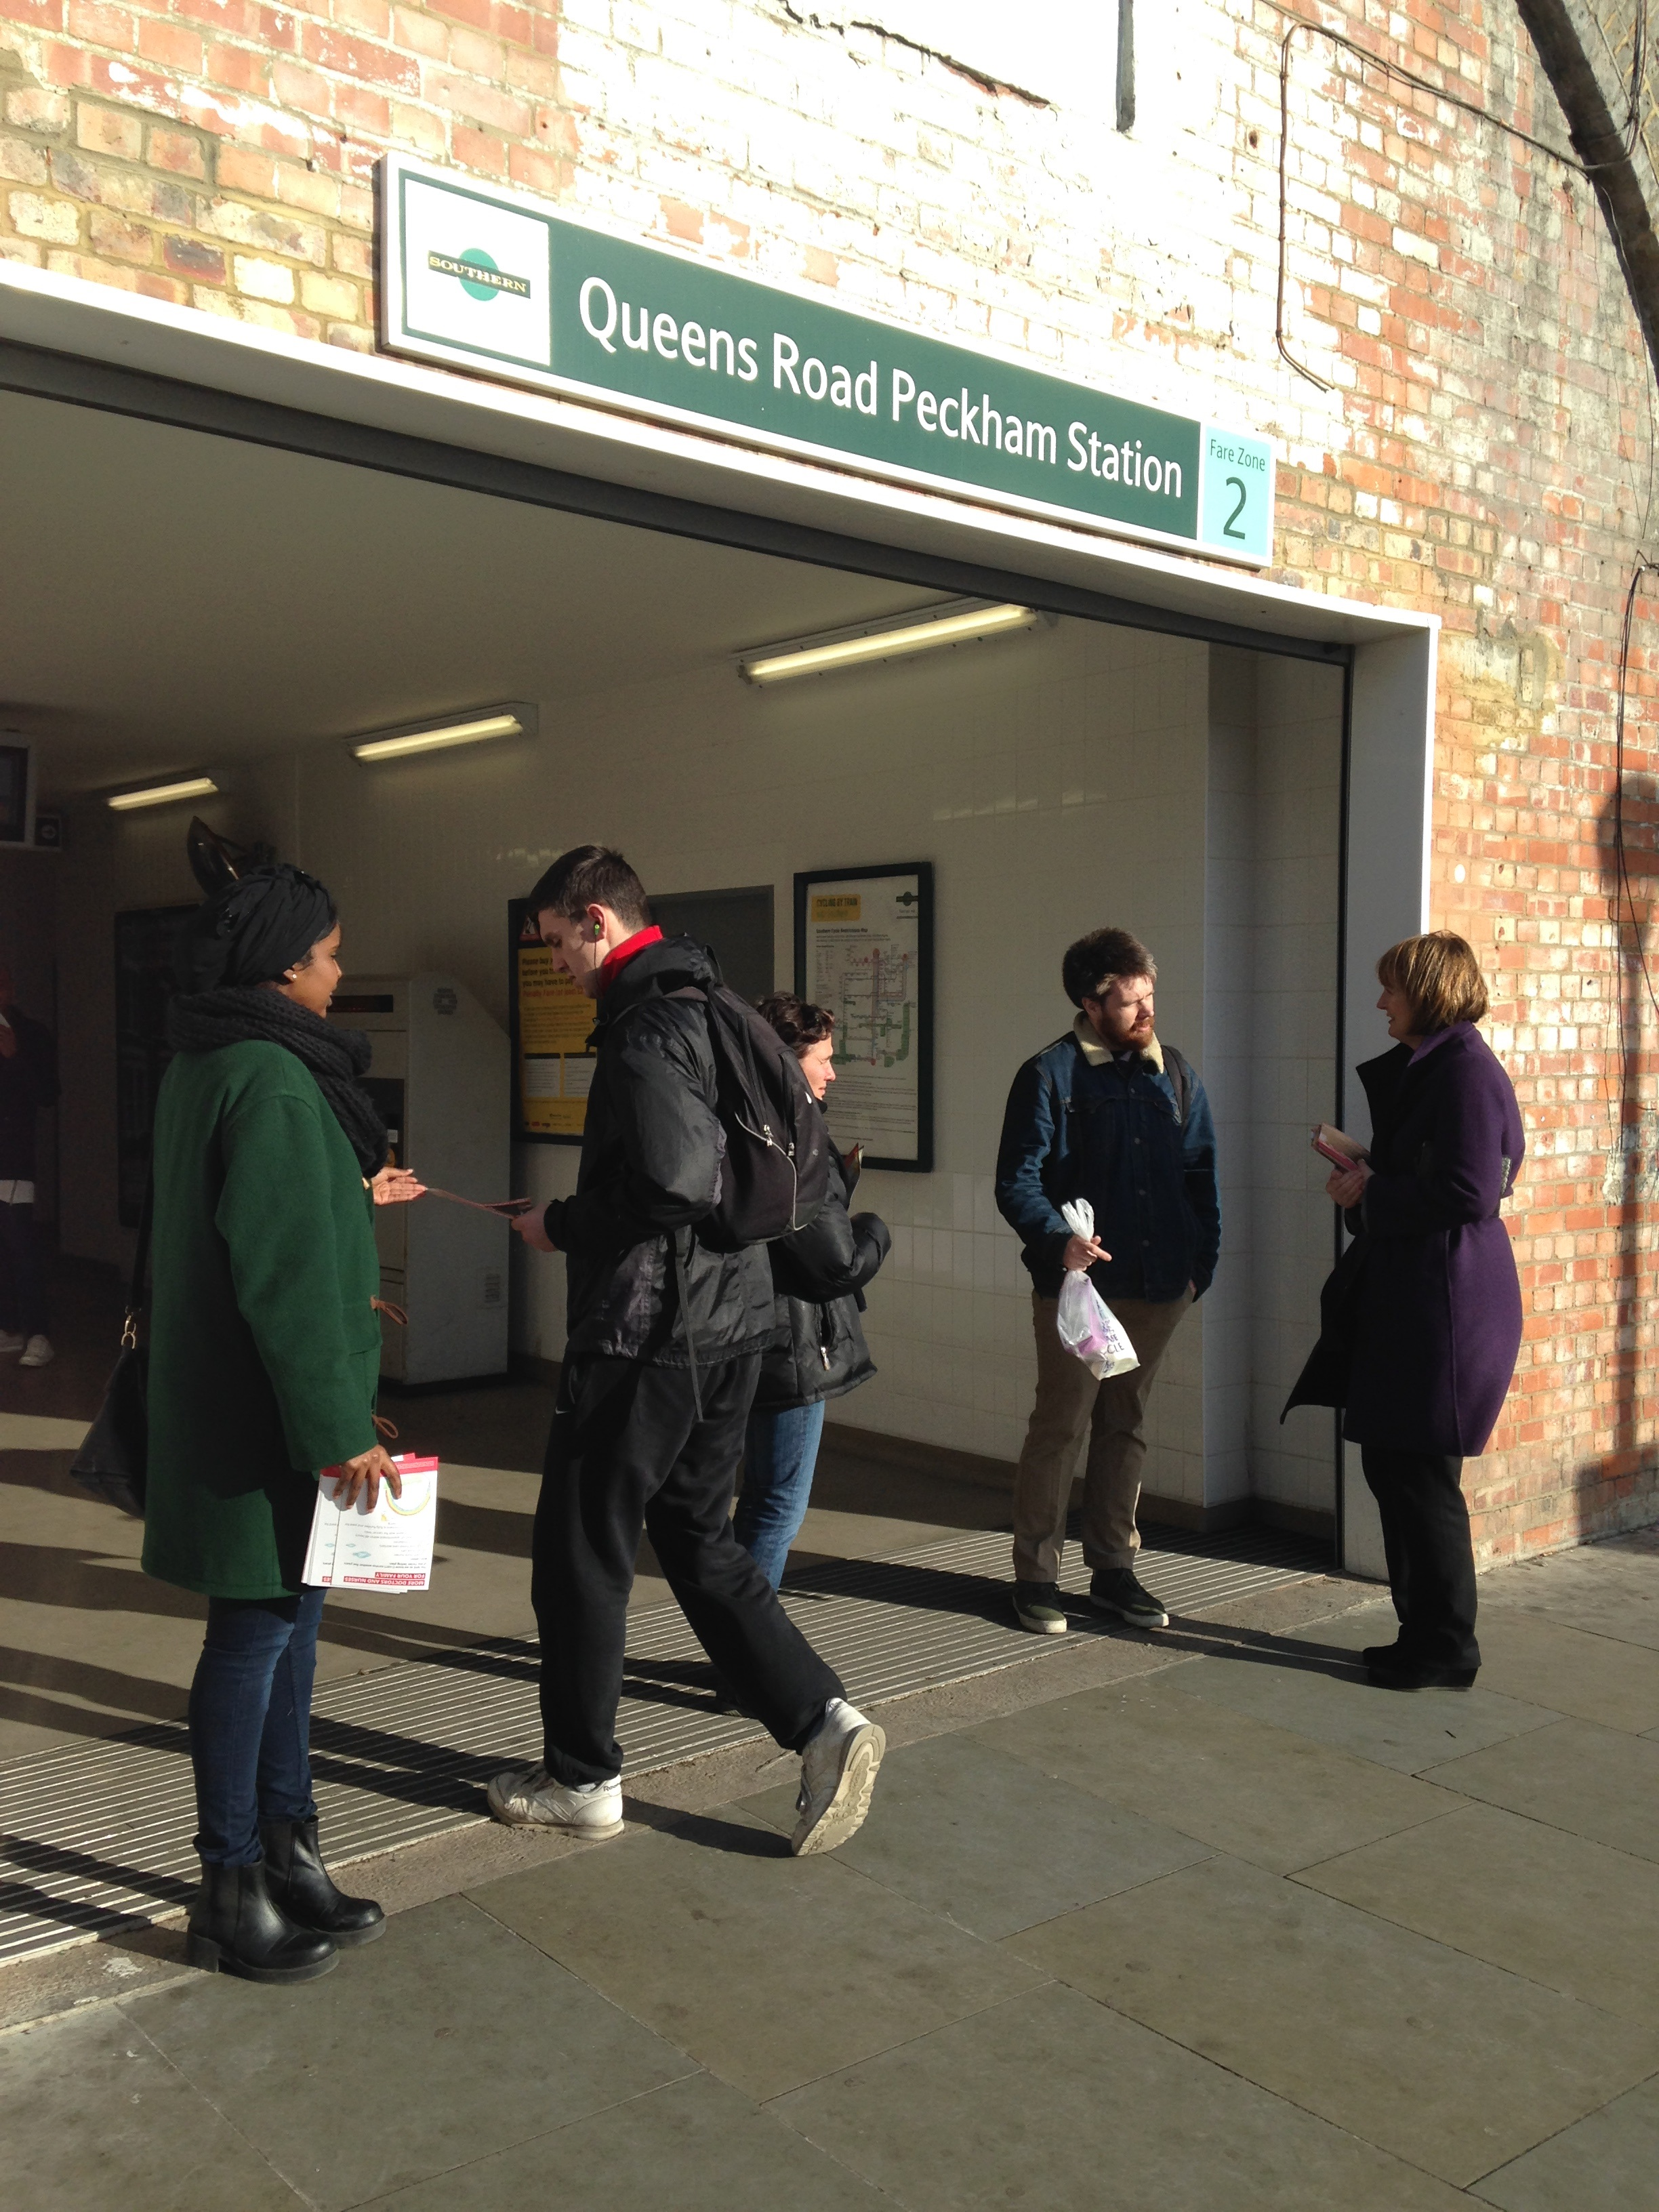 Queens_Road_station4_6.5.15.JPG